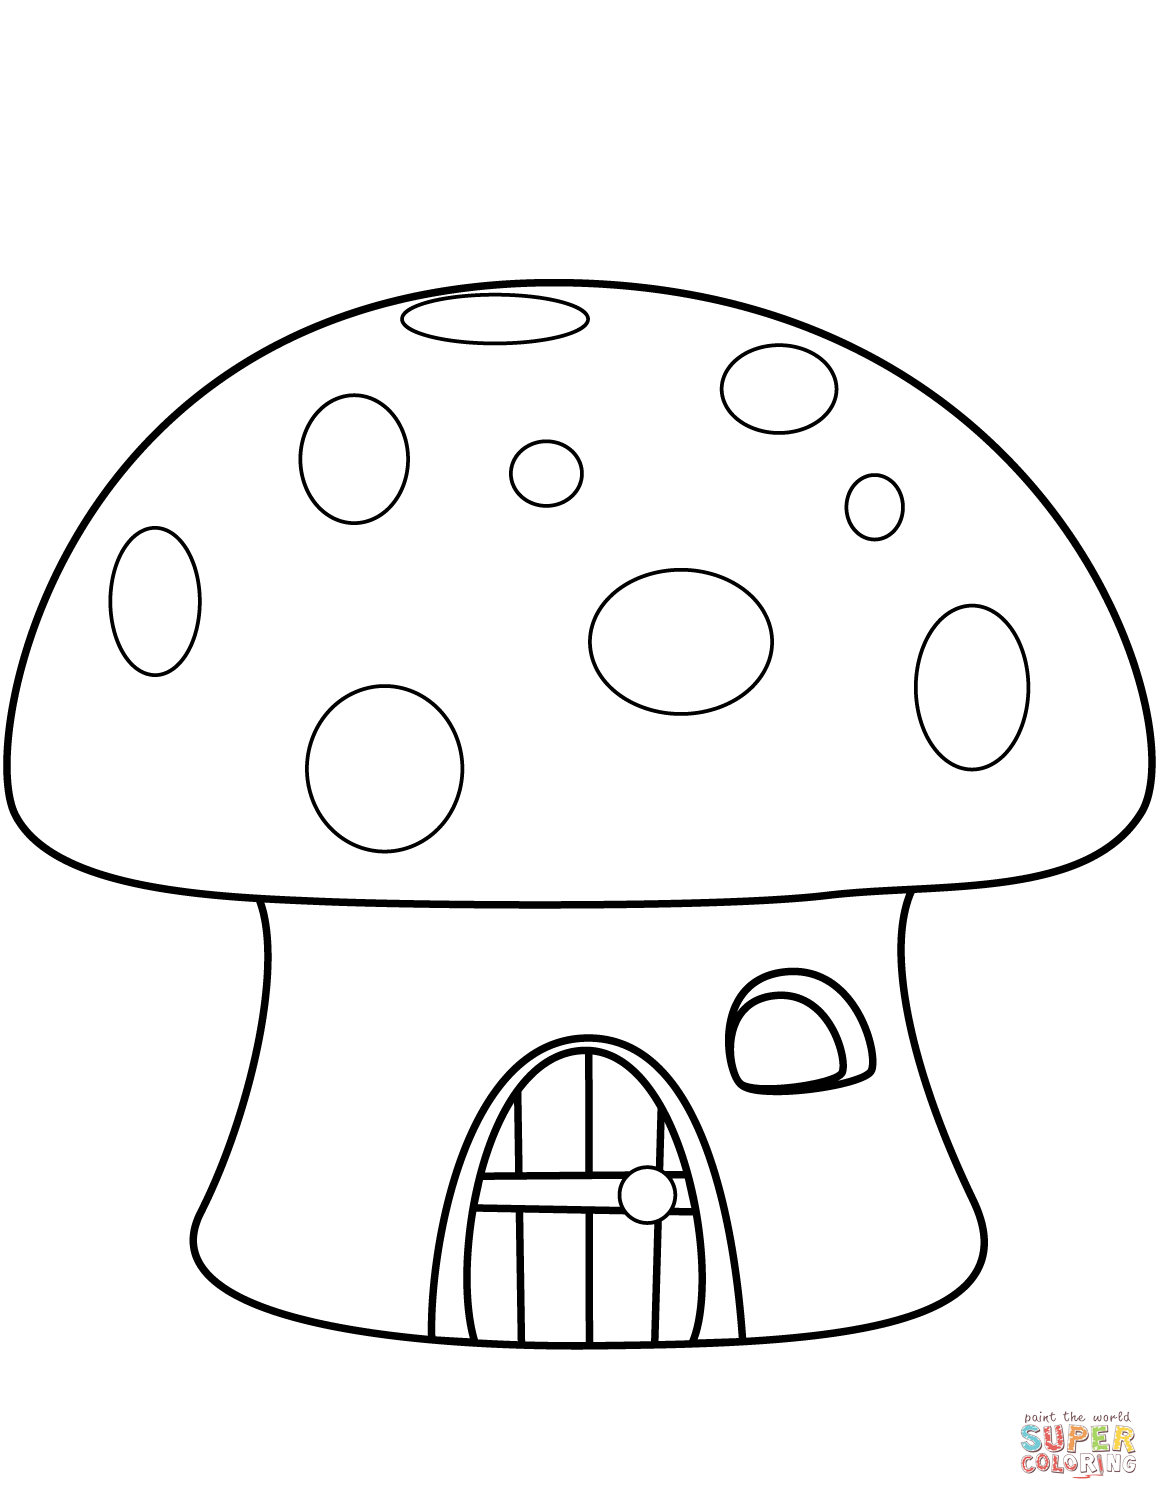 1159x1500 Mushroom House Coloring Page Mushroom Coloring Pages For Adults